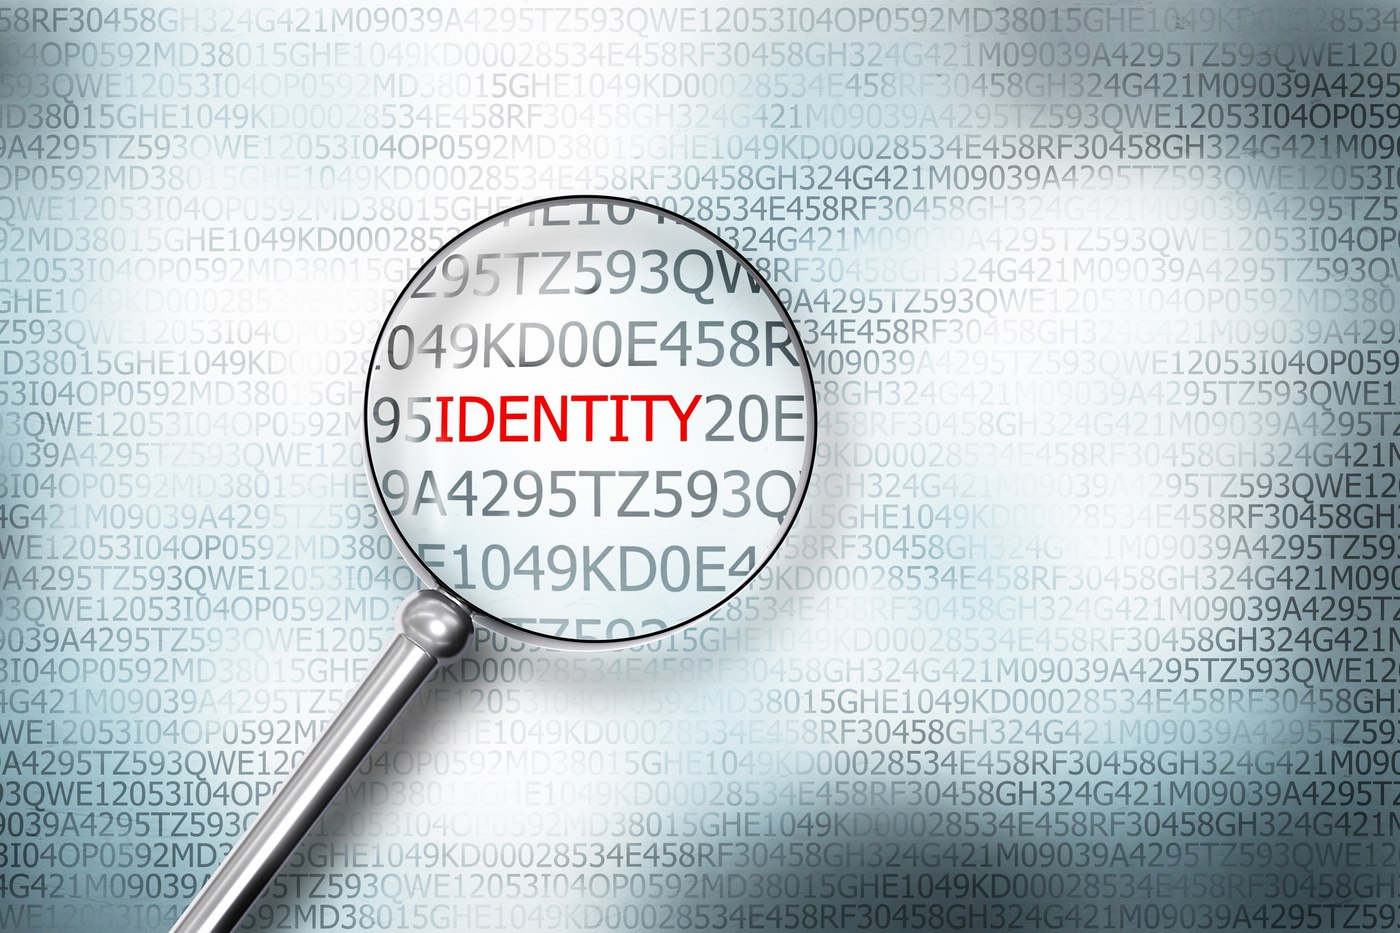 ESG Brief: Shifting IAM Responsibilities to the Information Security Group